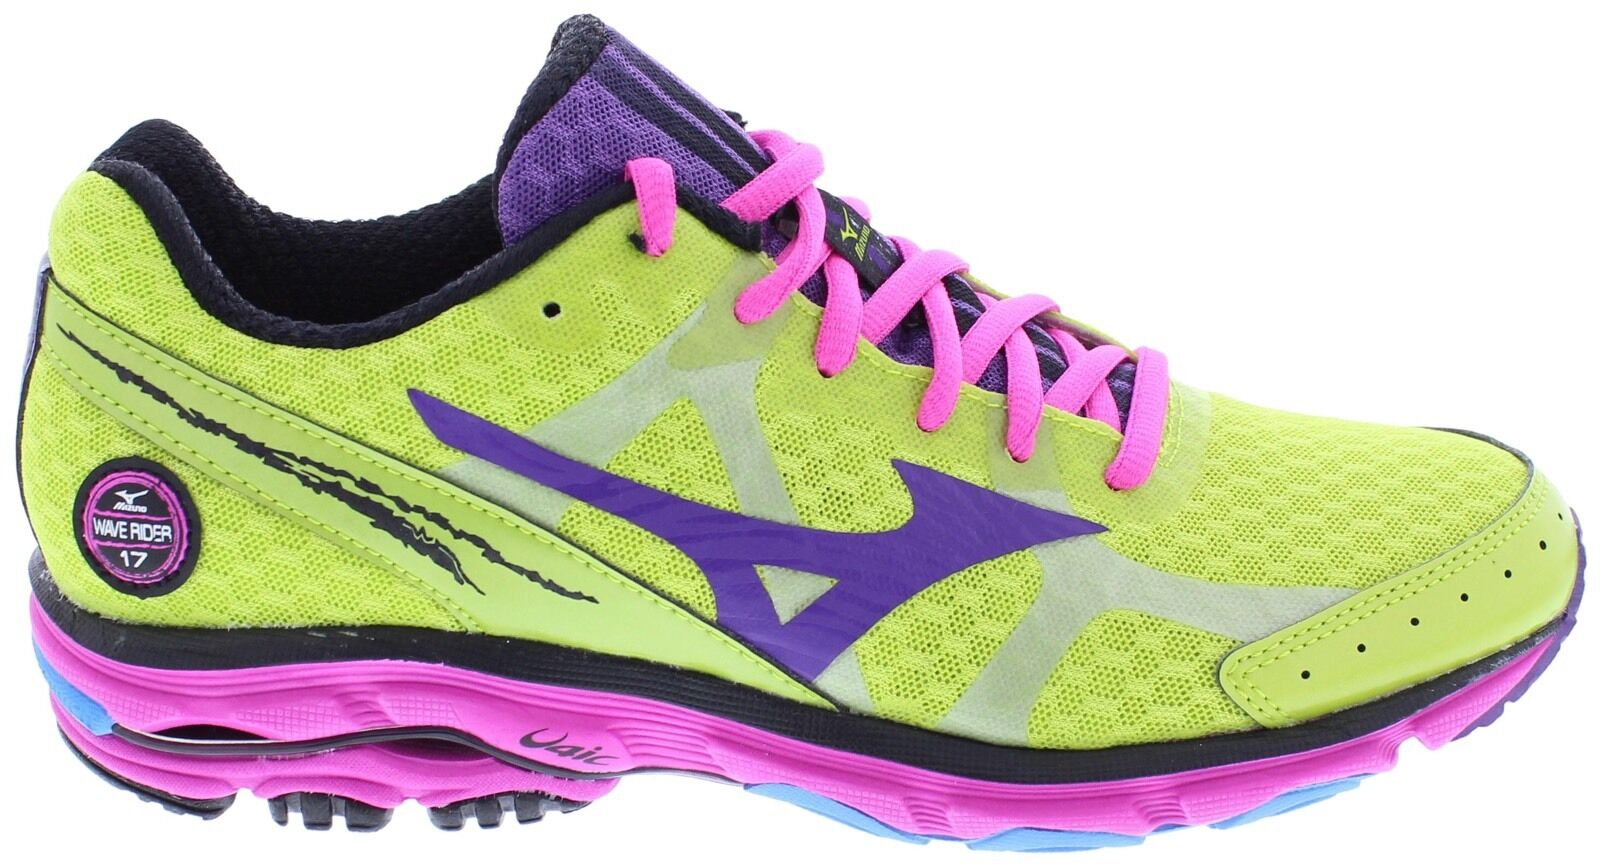 MIZUNO WAVE RIDER 17 GREEN PINK PURPLE PREMIUM WOMEN'S RUNNING Schuhe  AUTHENTIC